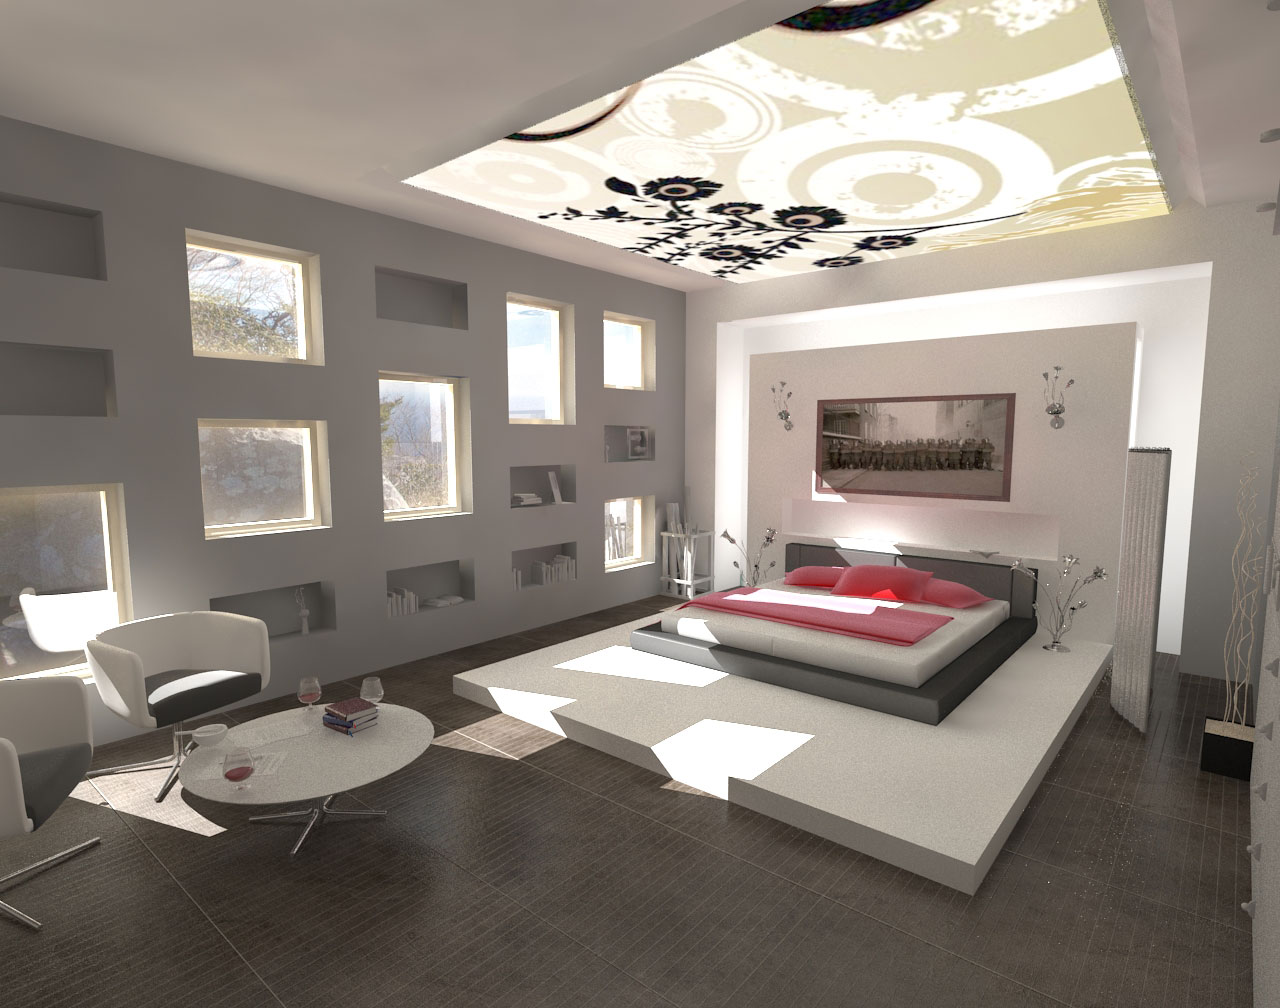 Decorations minimalist design modern bedroom interior for New look bedroom ideas